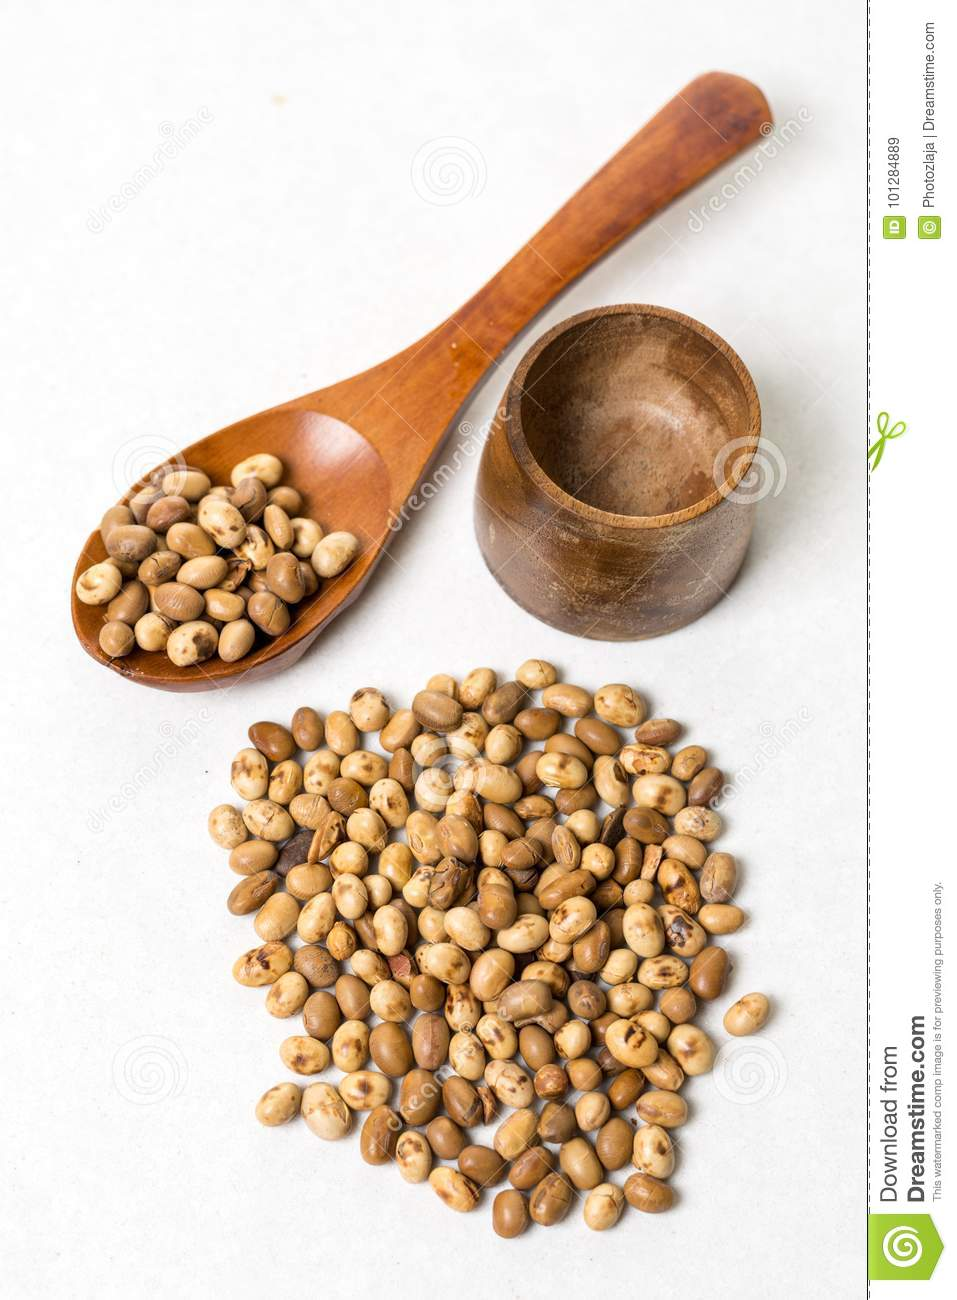 Pile Of Soya Beans With Wooden Spoon On The White Marble